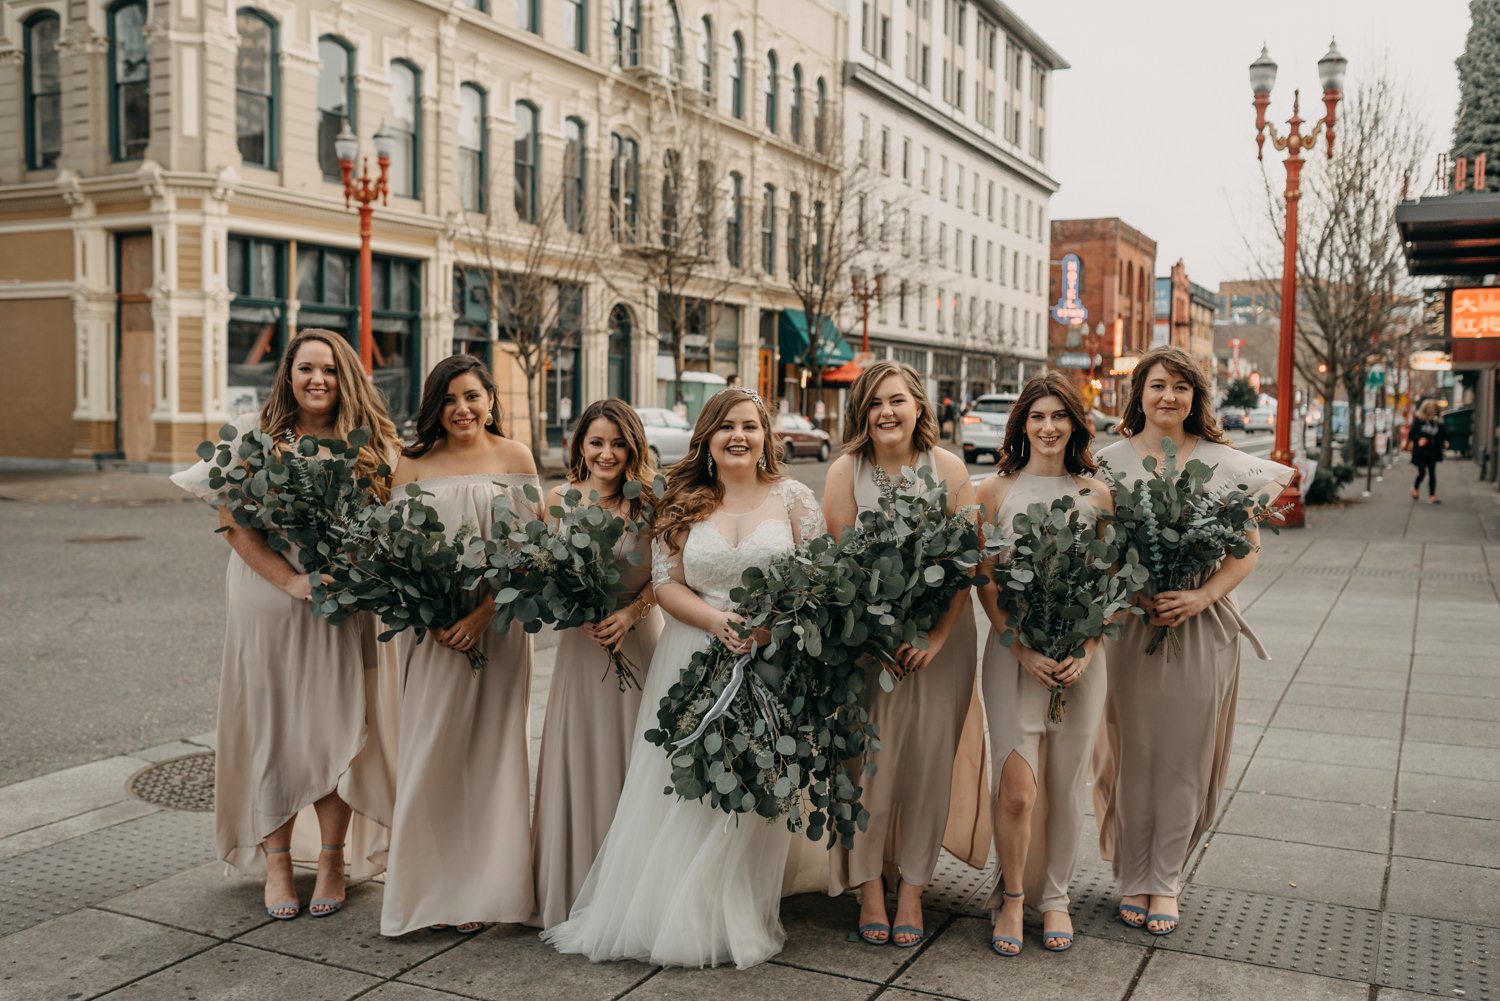 61downtown-Portland-Wedding-society-hotel.jpg